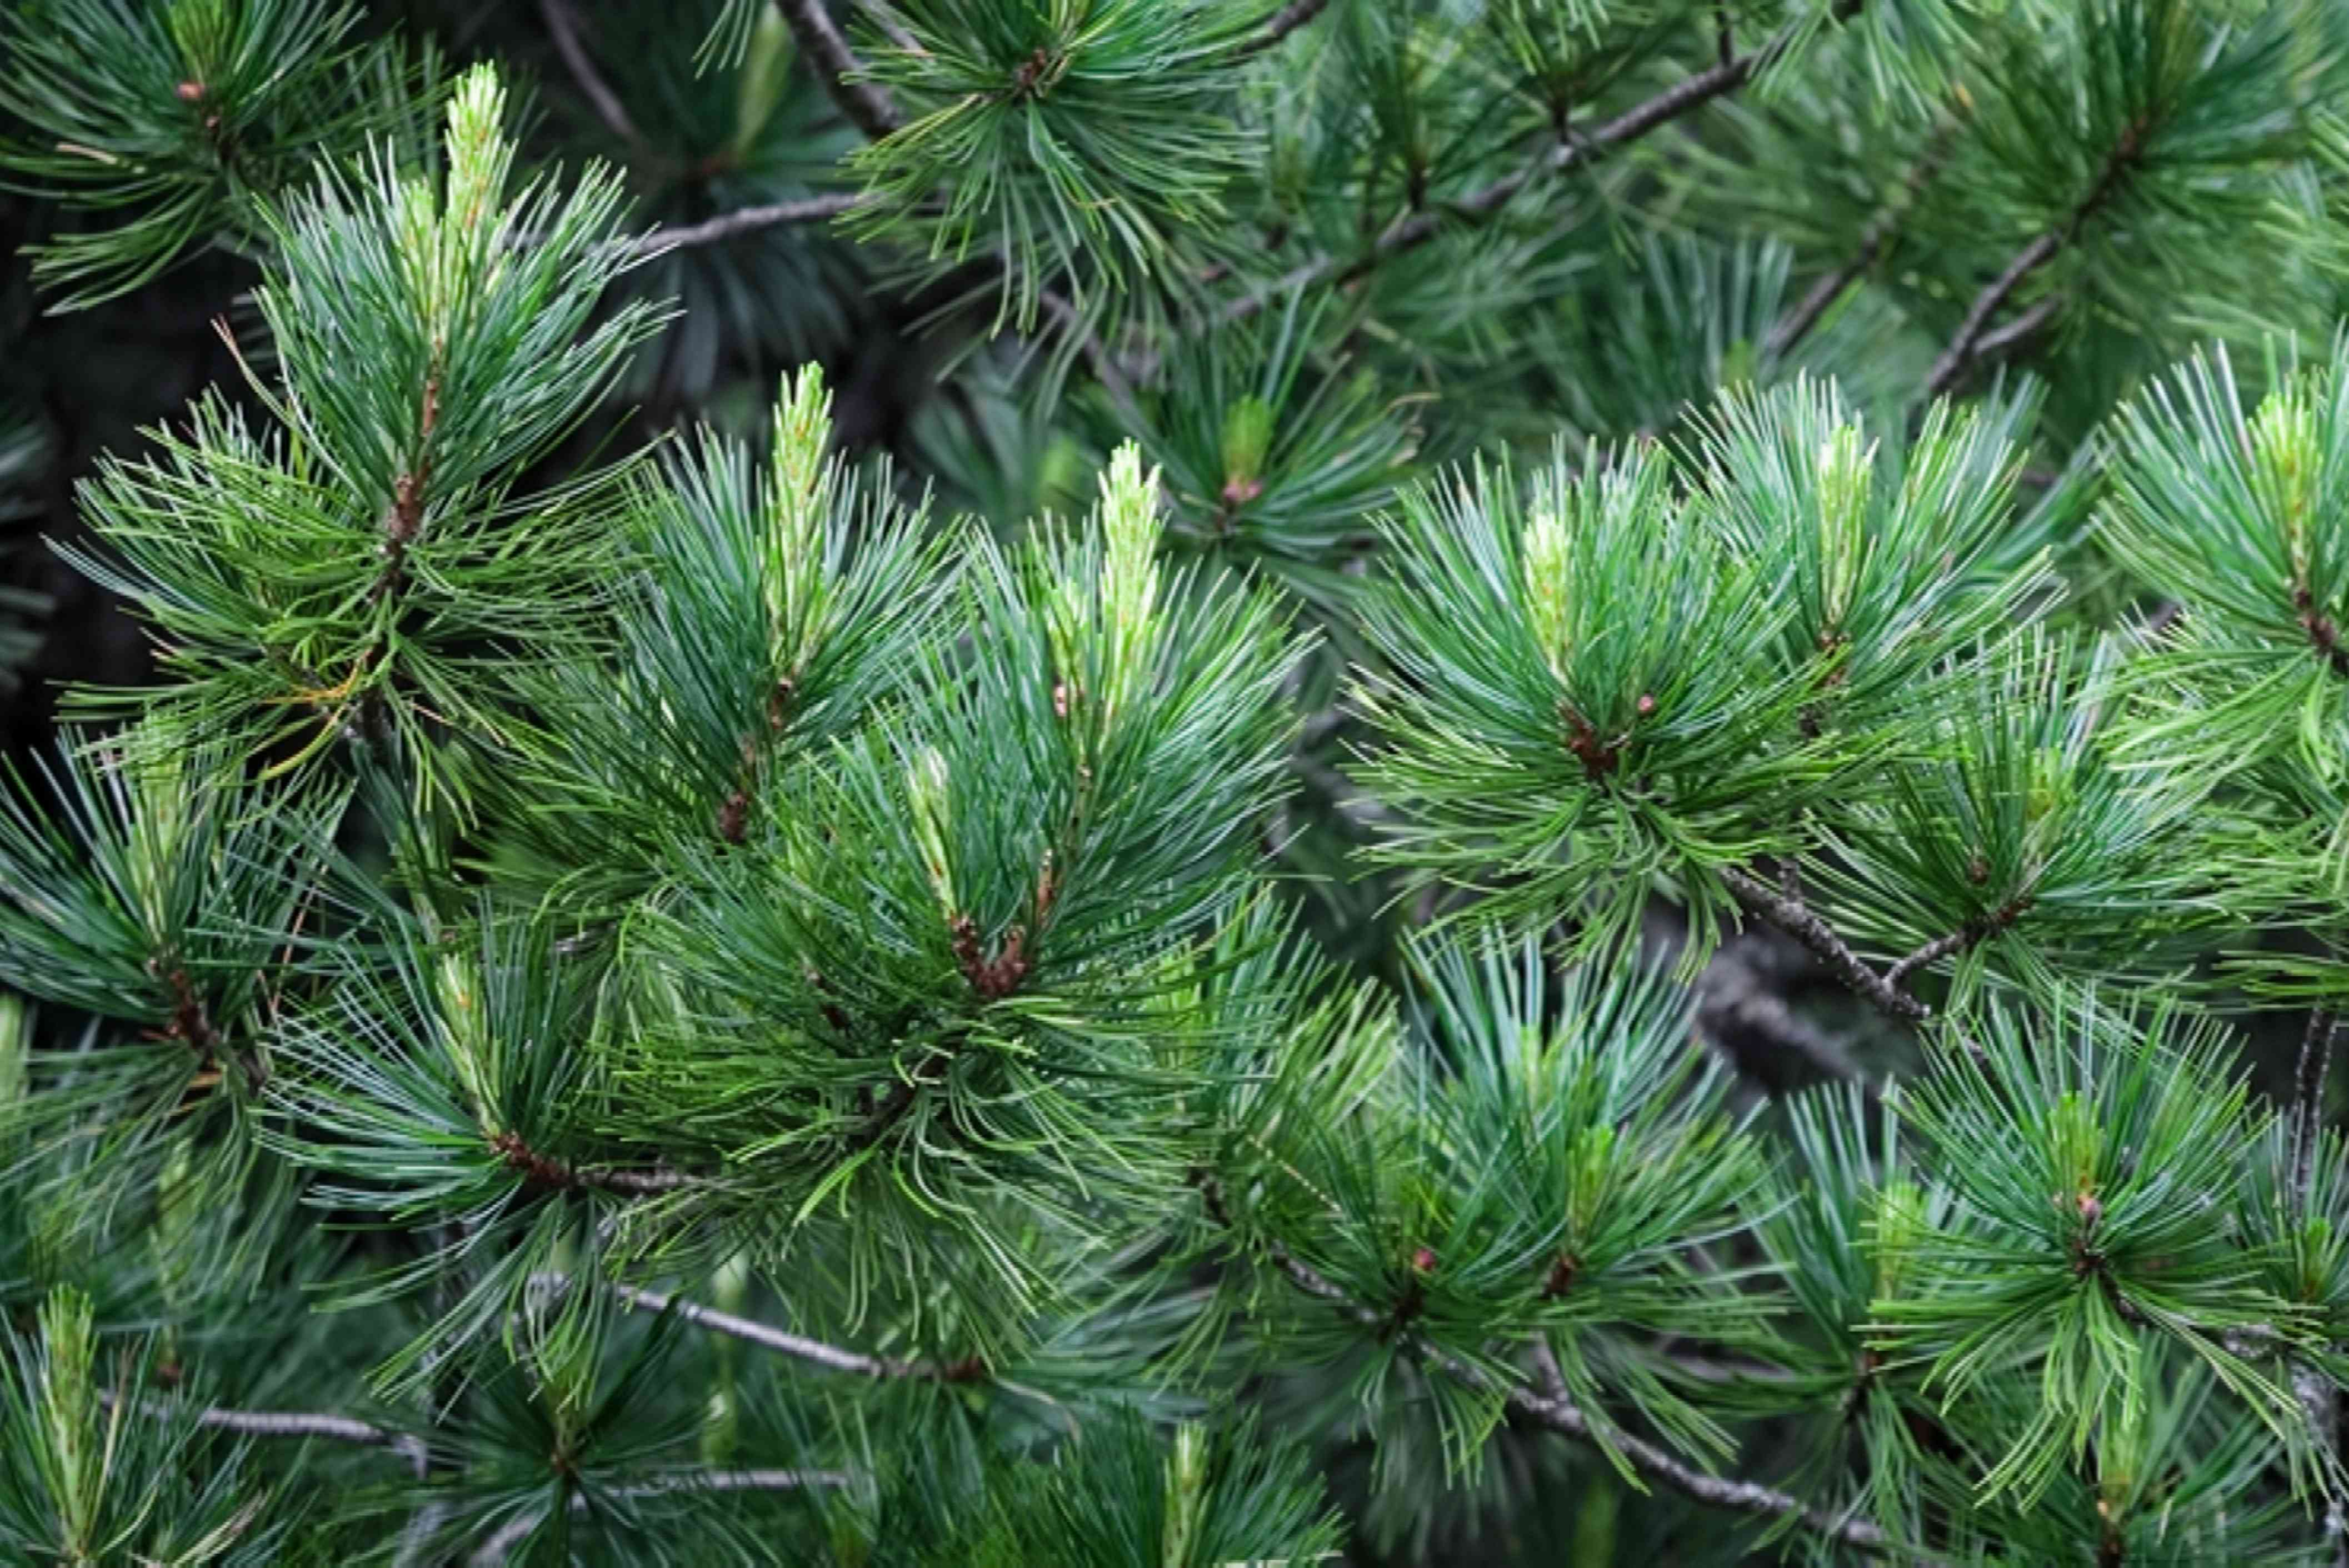 Stone pine tree branches with green needles and new growth closeup